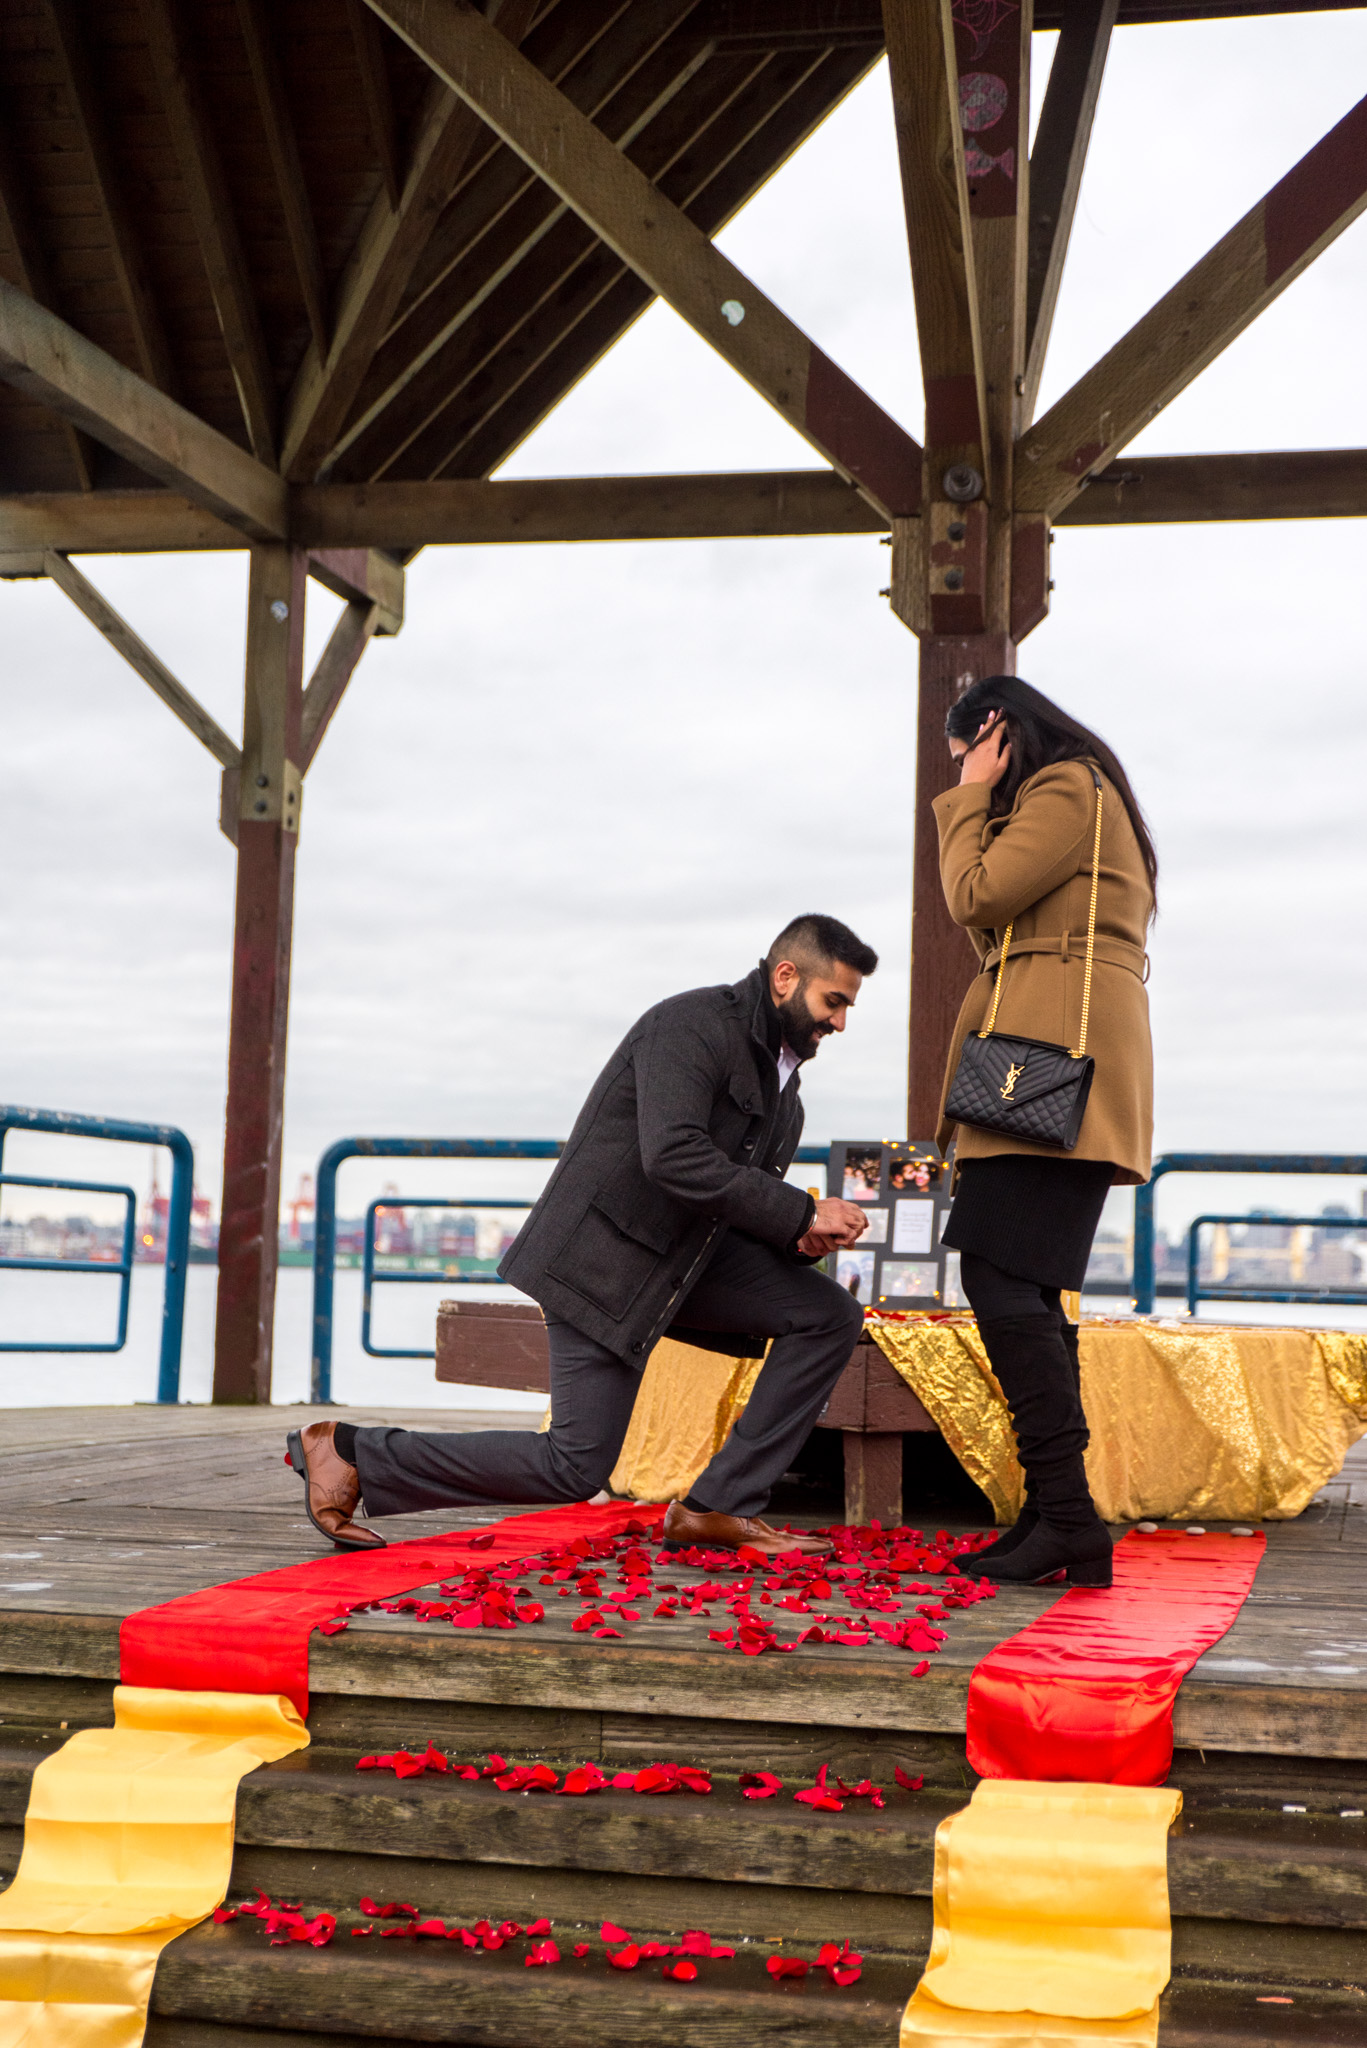 Lonsdale Quay Proposal Photographer-26.JPG